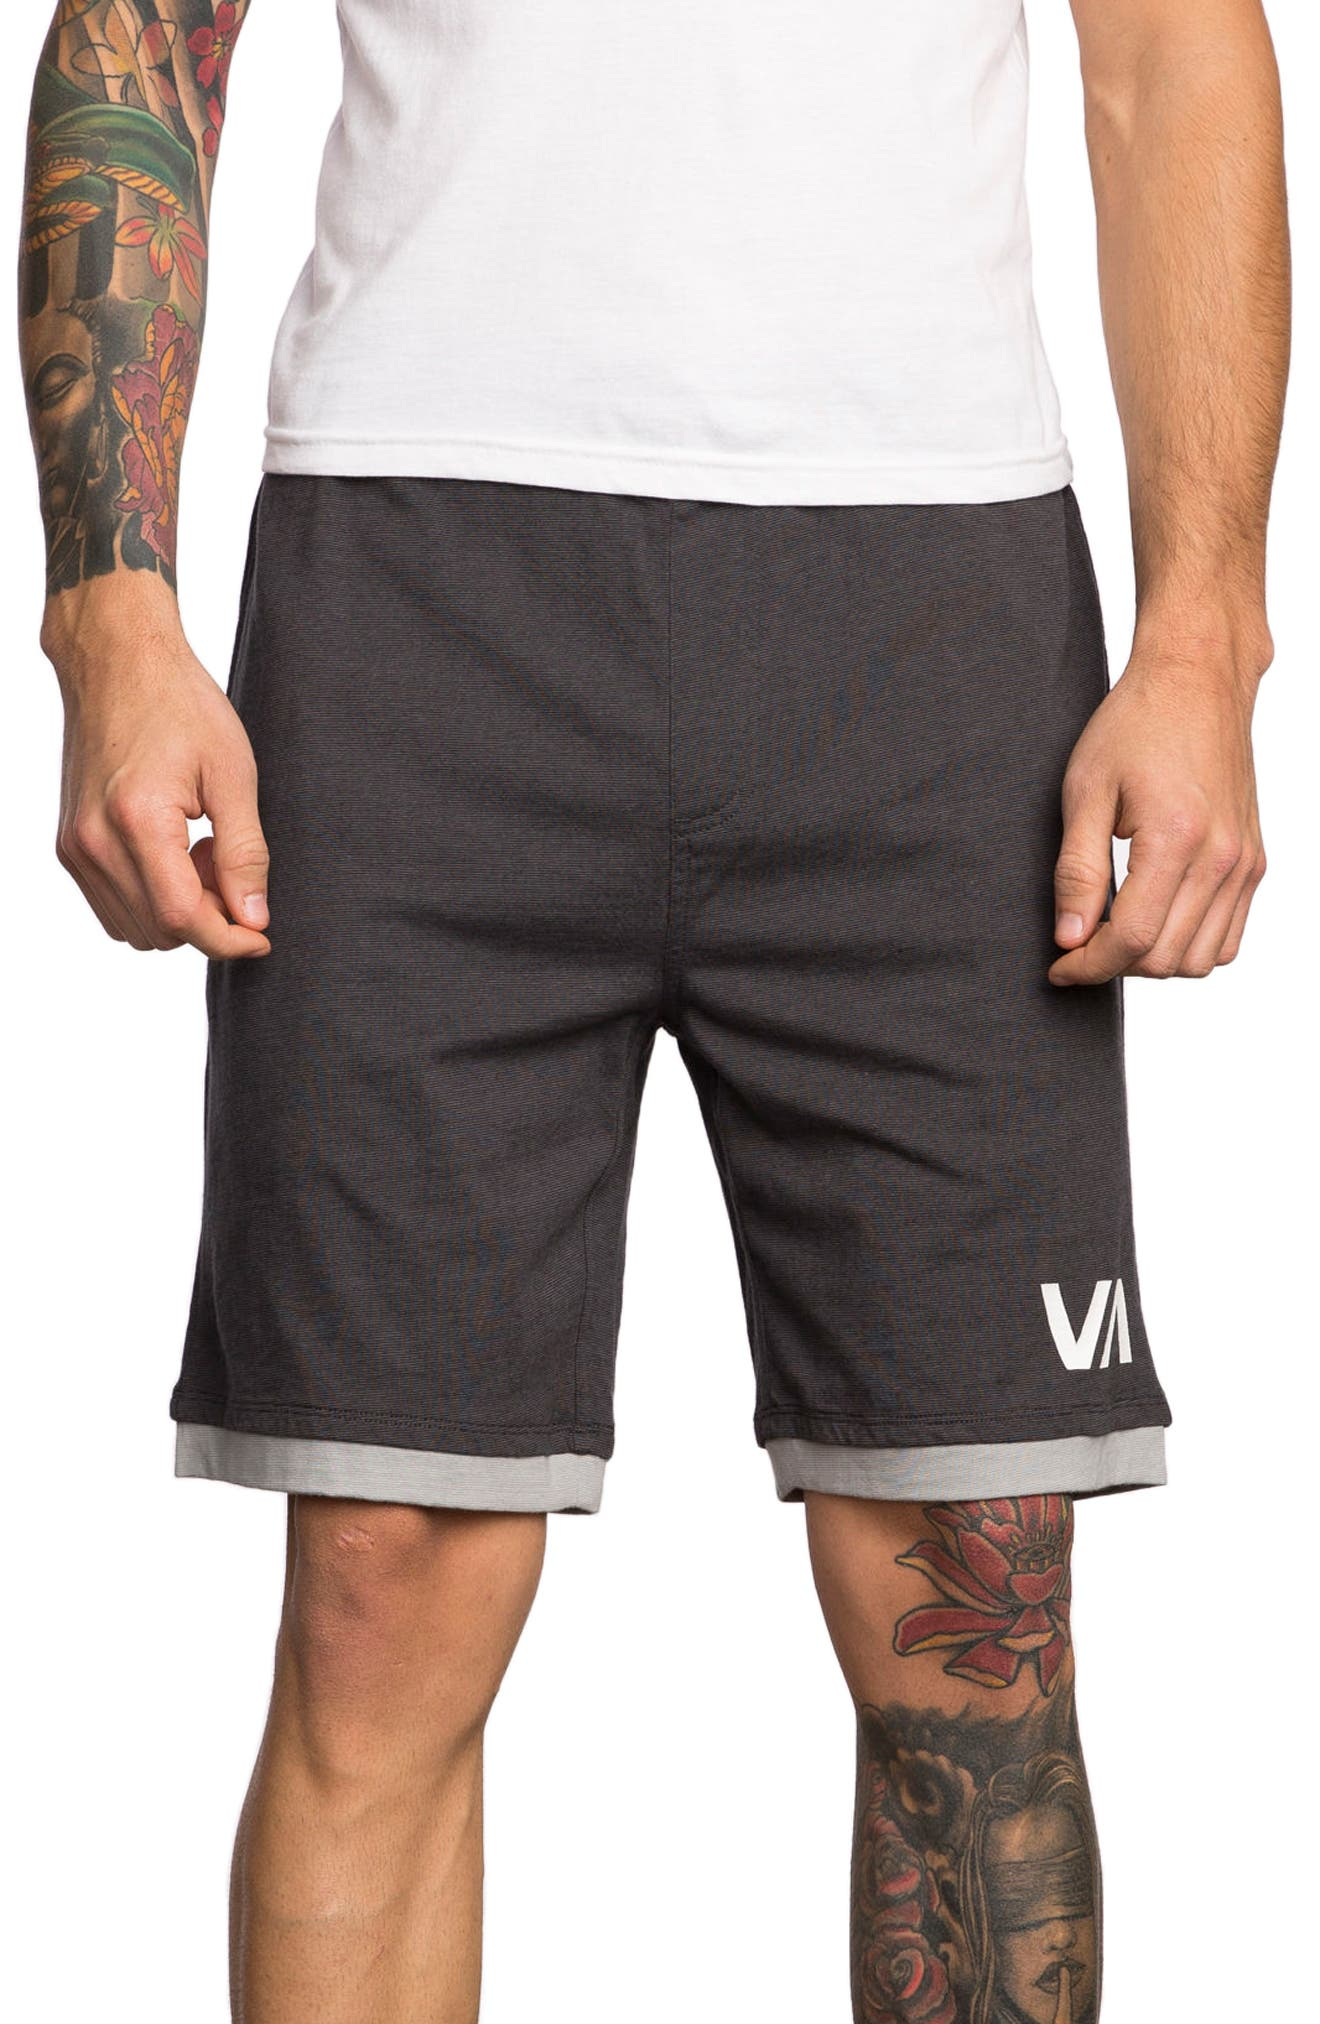 Layers Sport Shorts,                         Main,                         color, Tawny Port